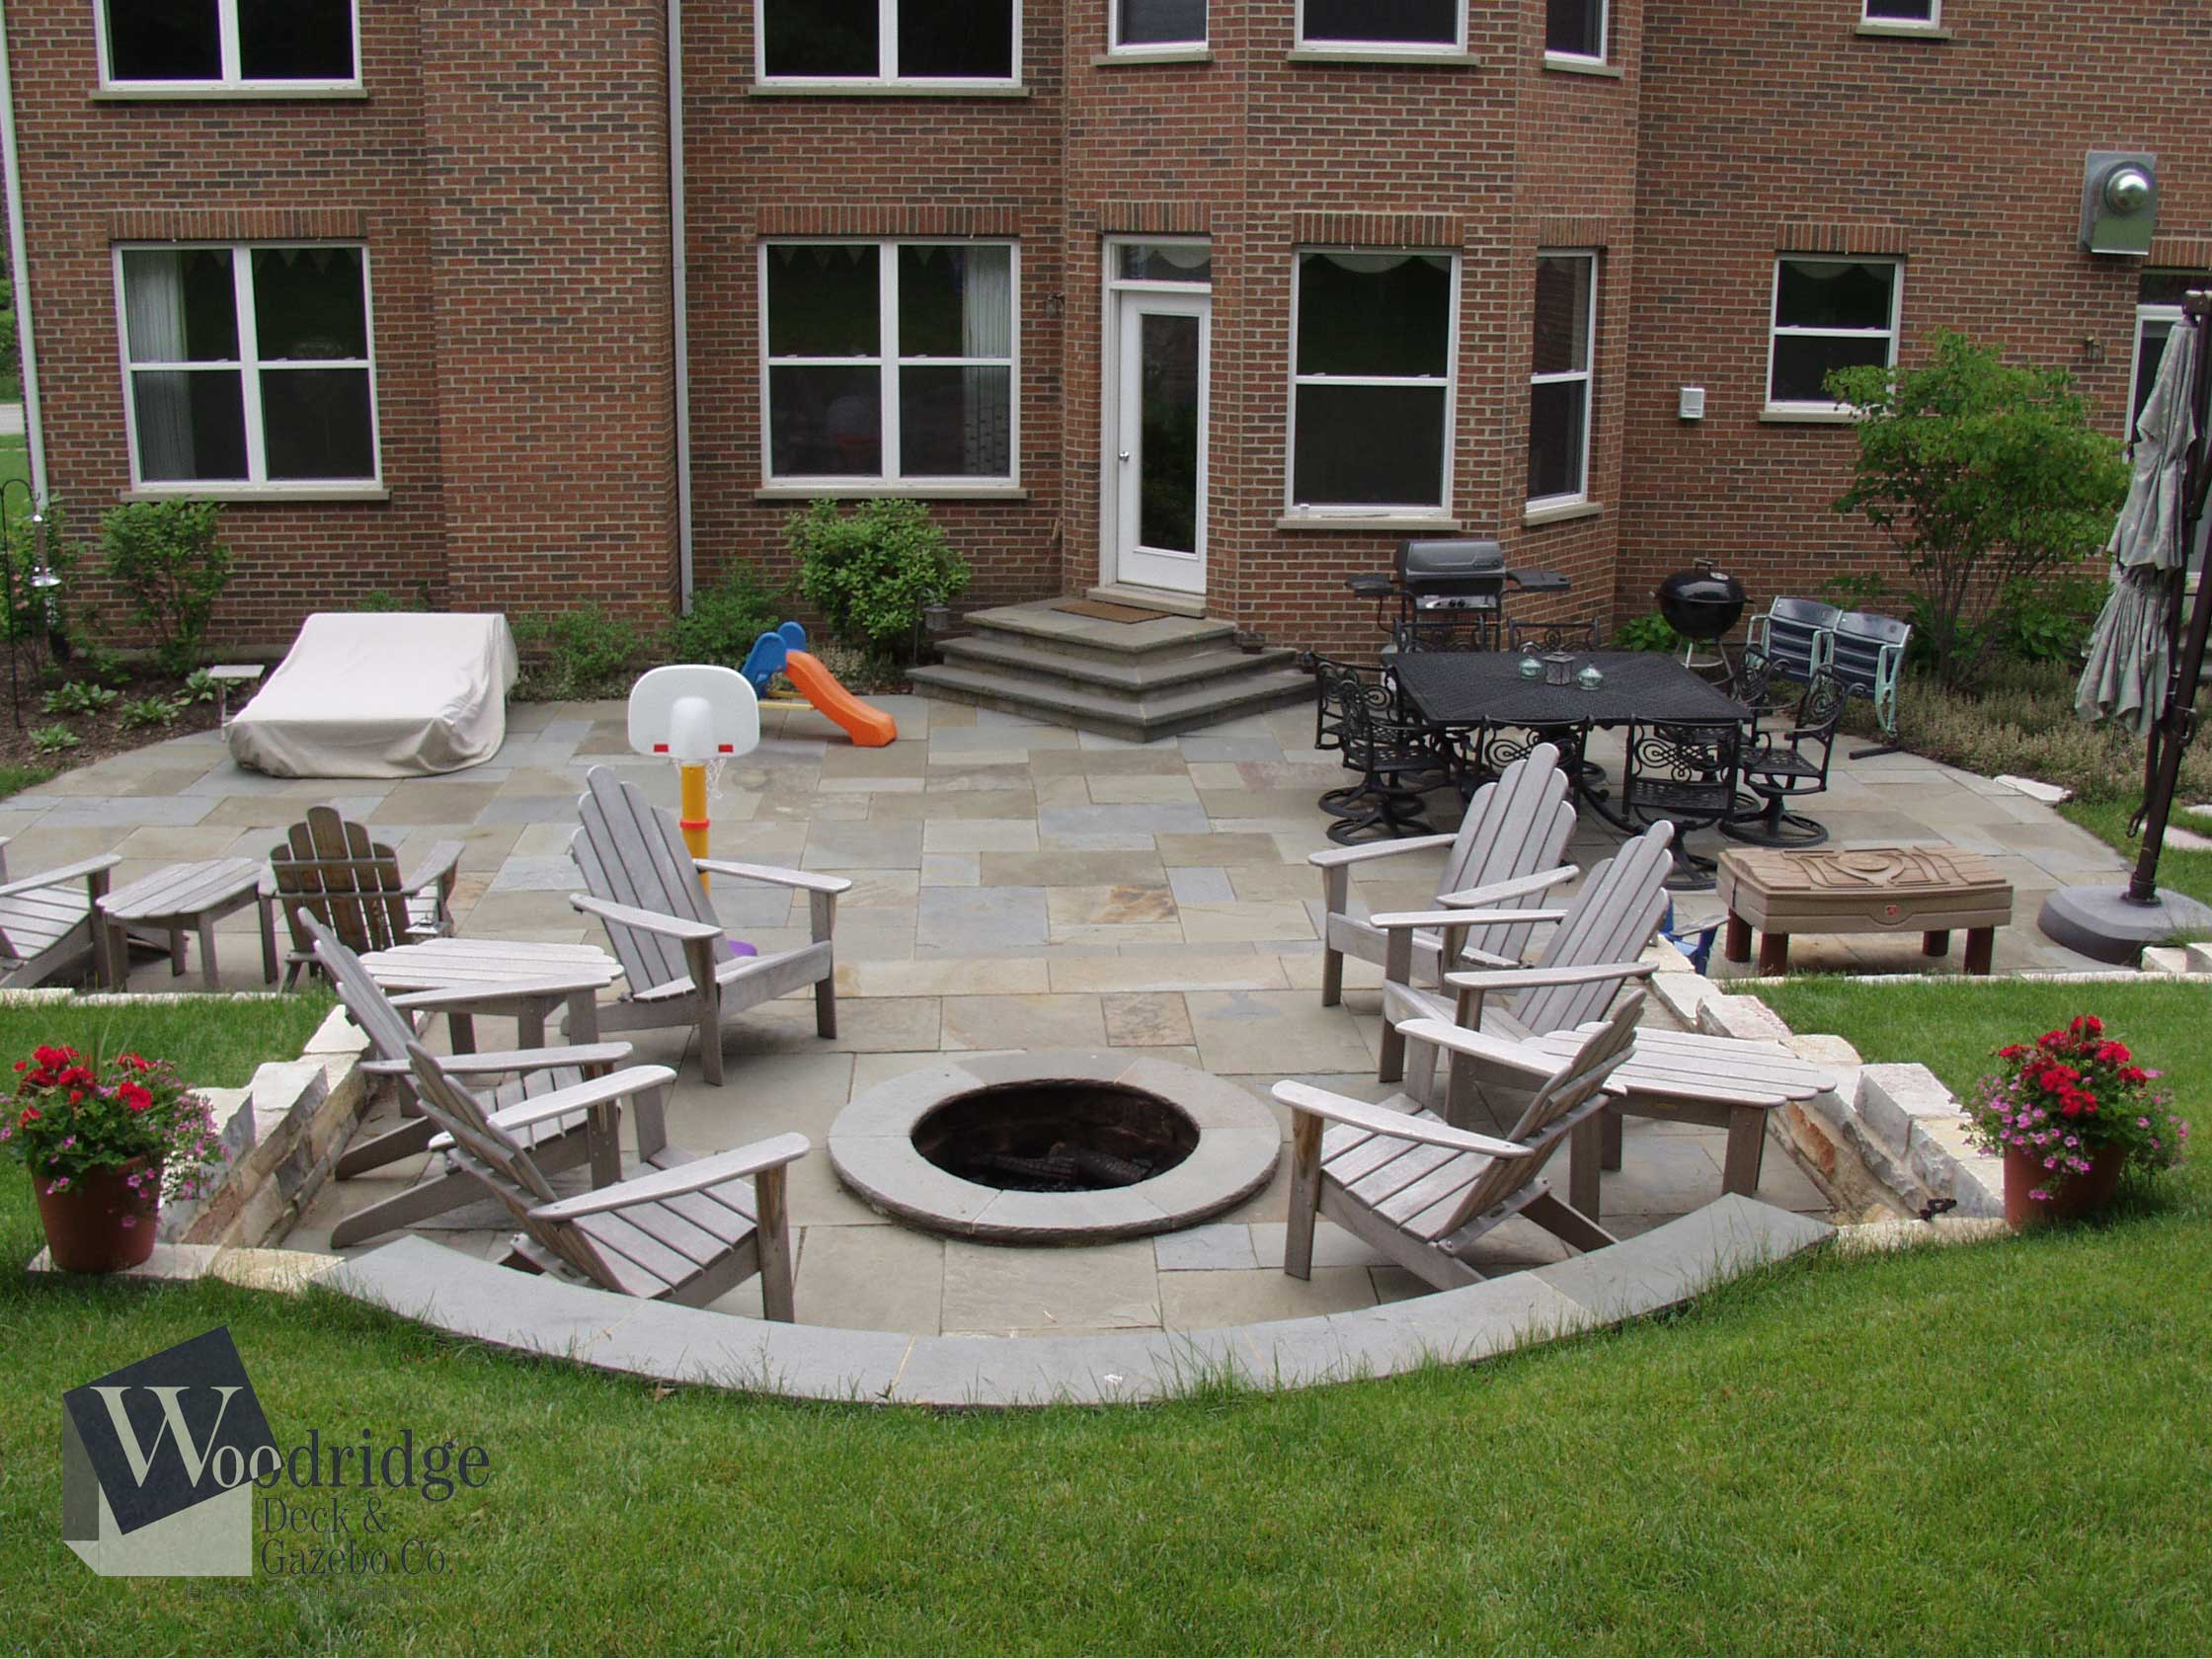 ZZ-10 Fullrange Bluestone Patio